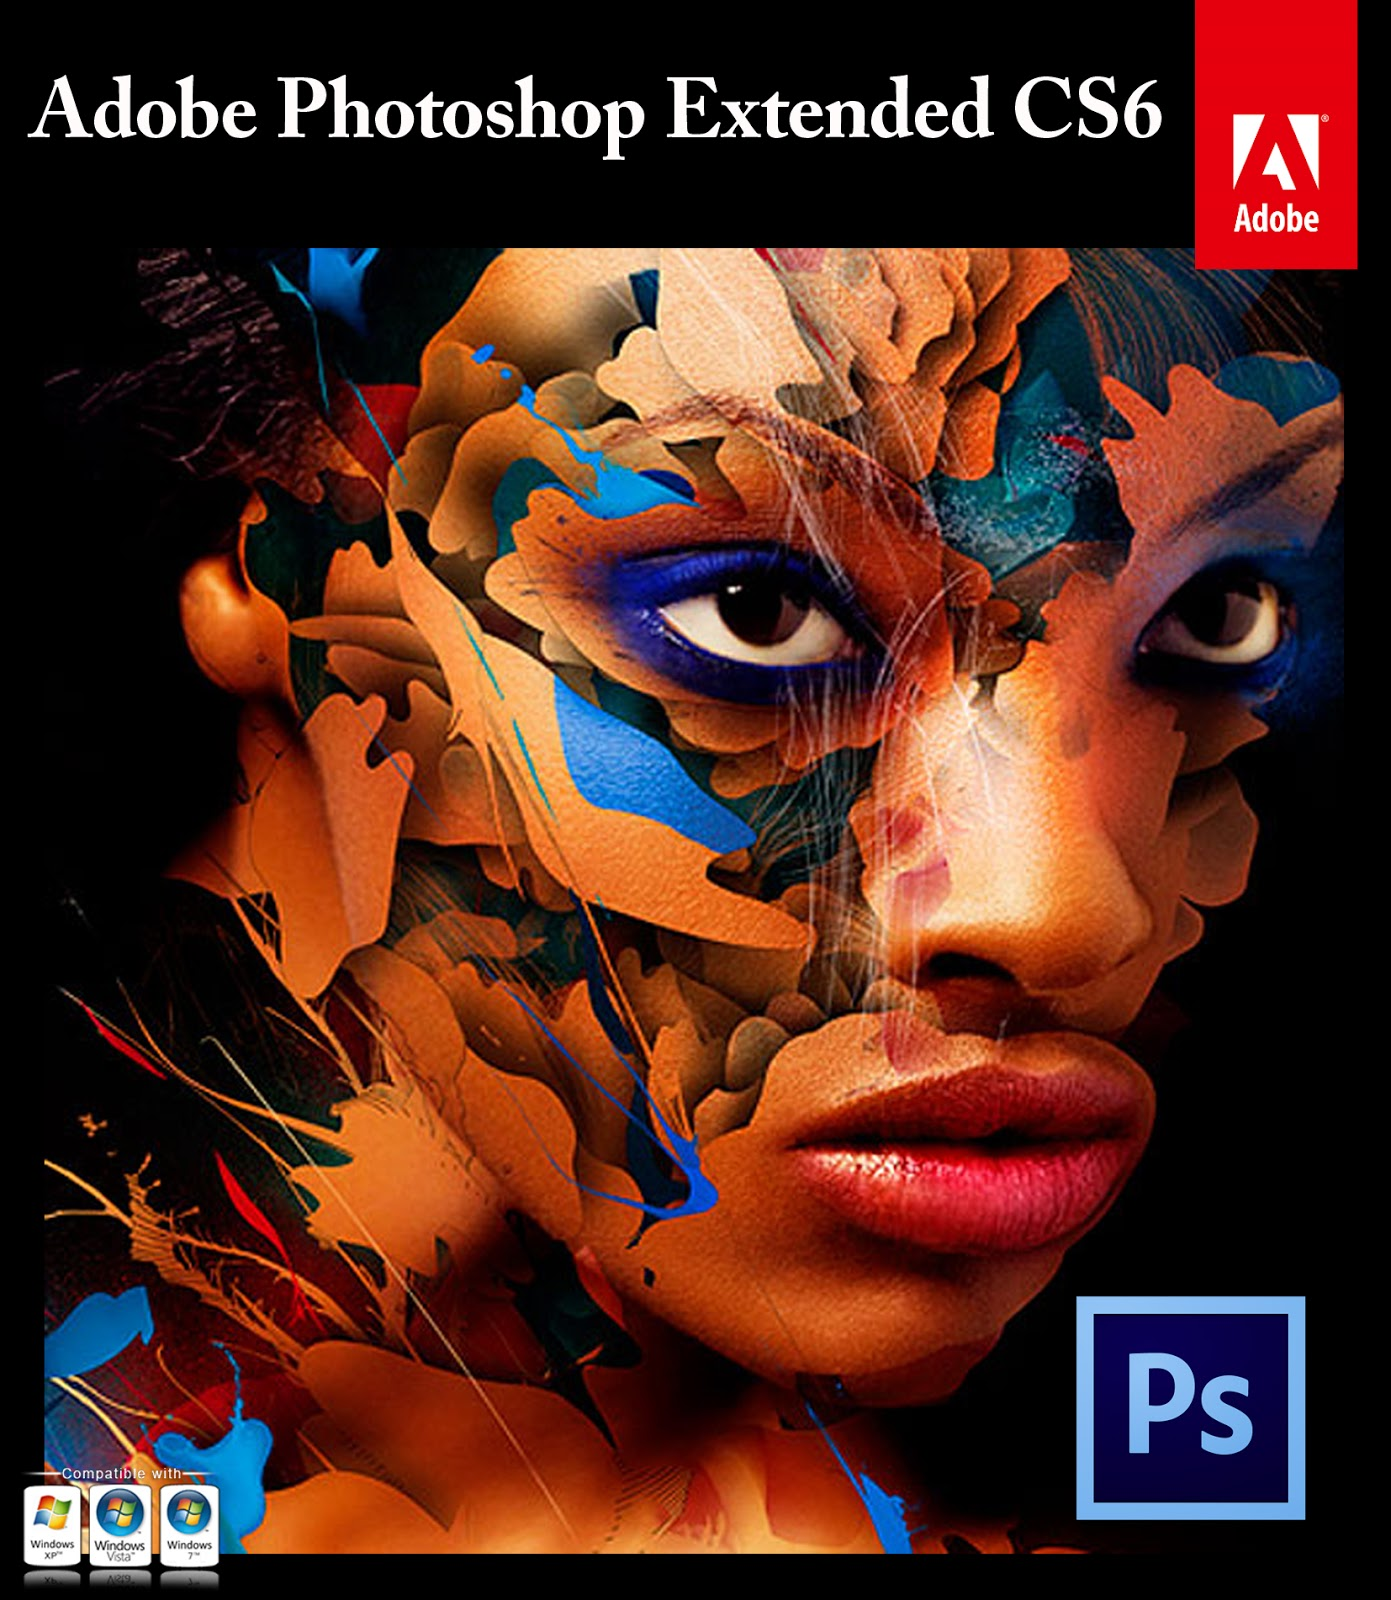 Adobe photoshop cs6 extended edition installer pullit